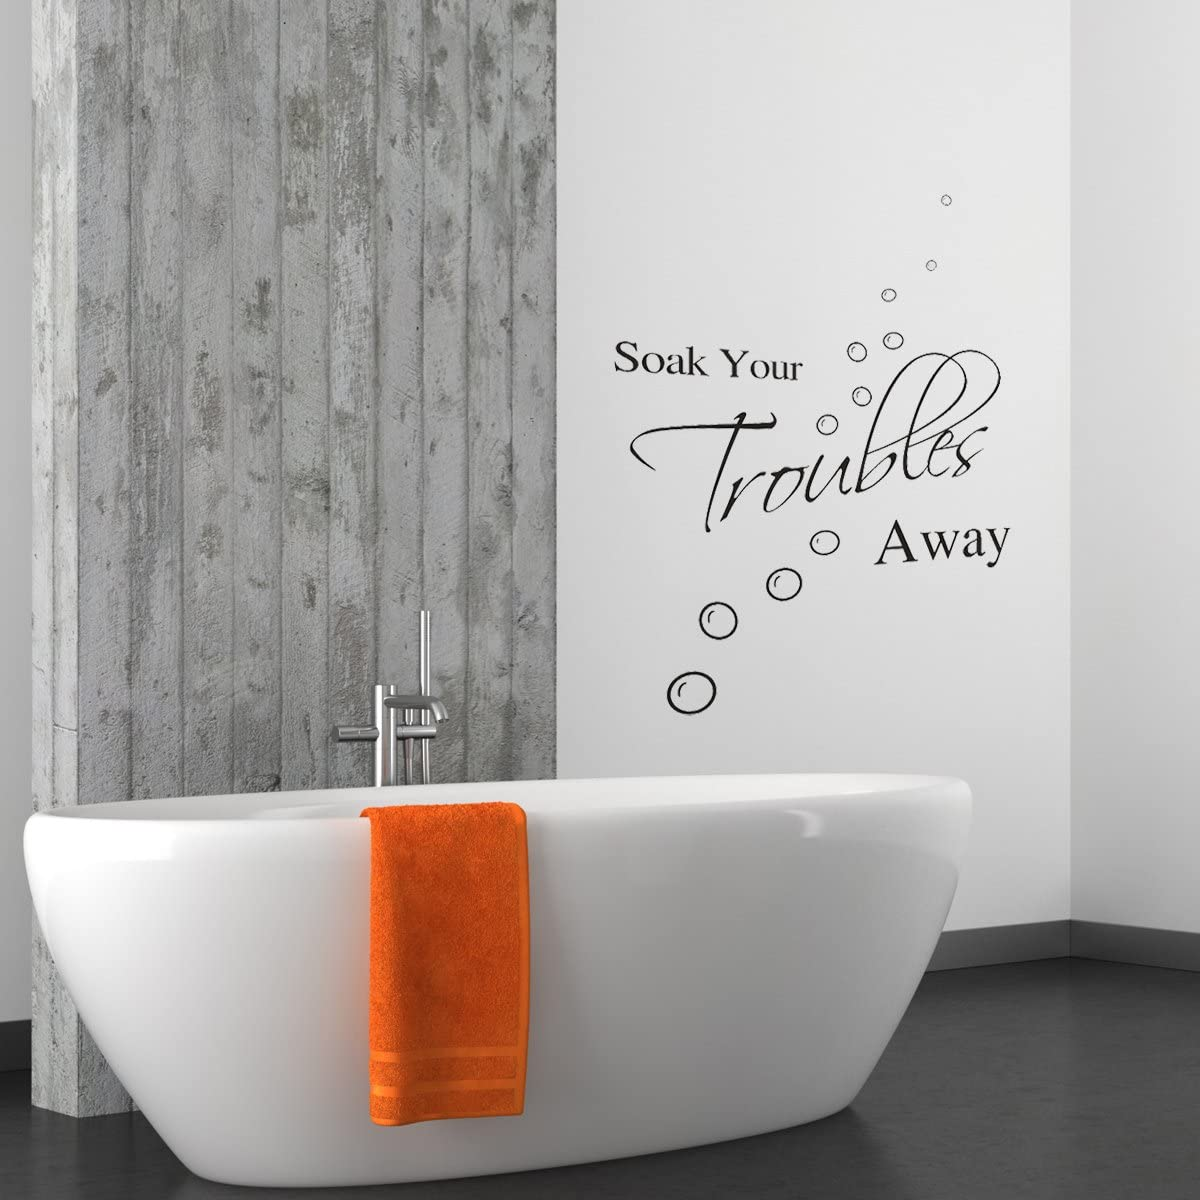 Lchen Always Forever Wall Sticker Removable Home Decal